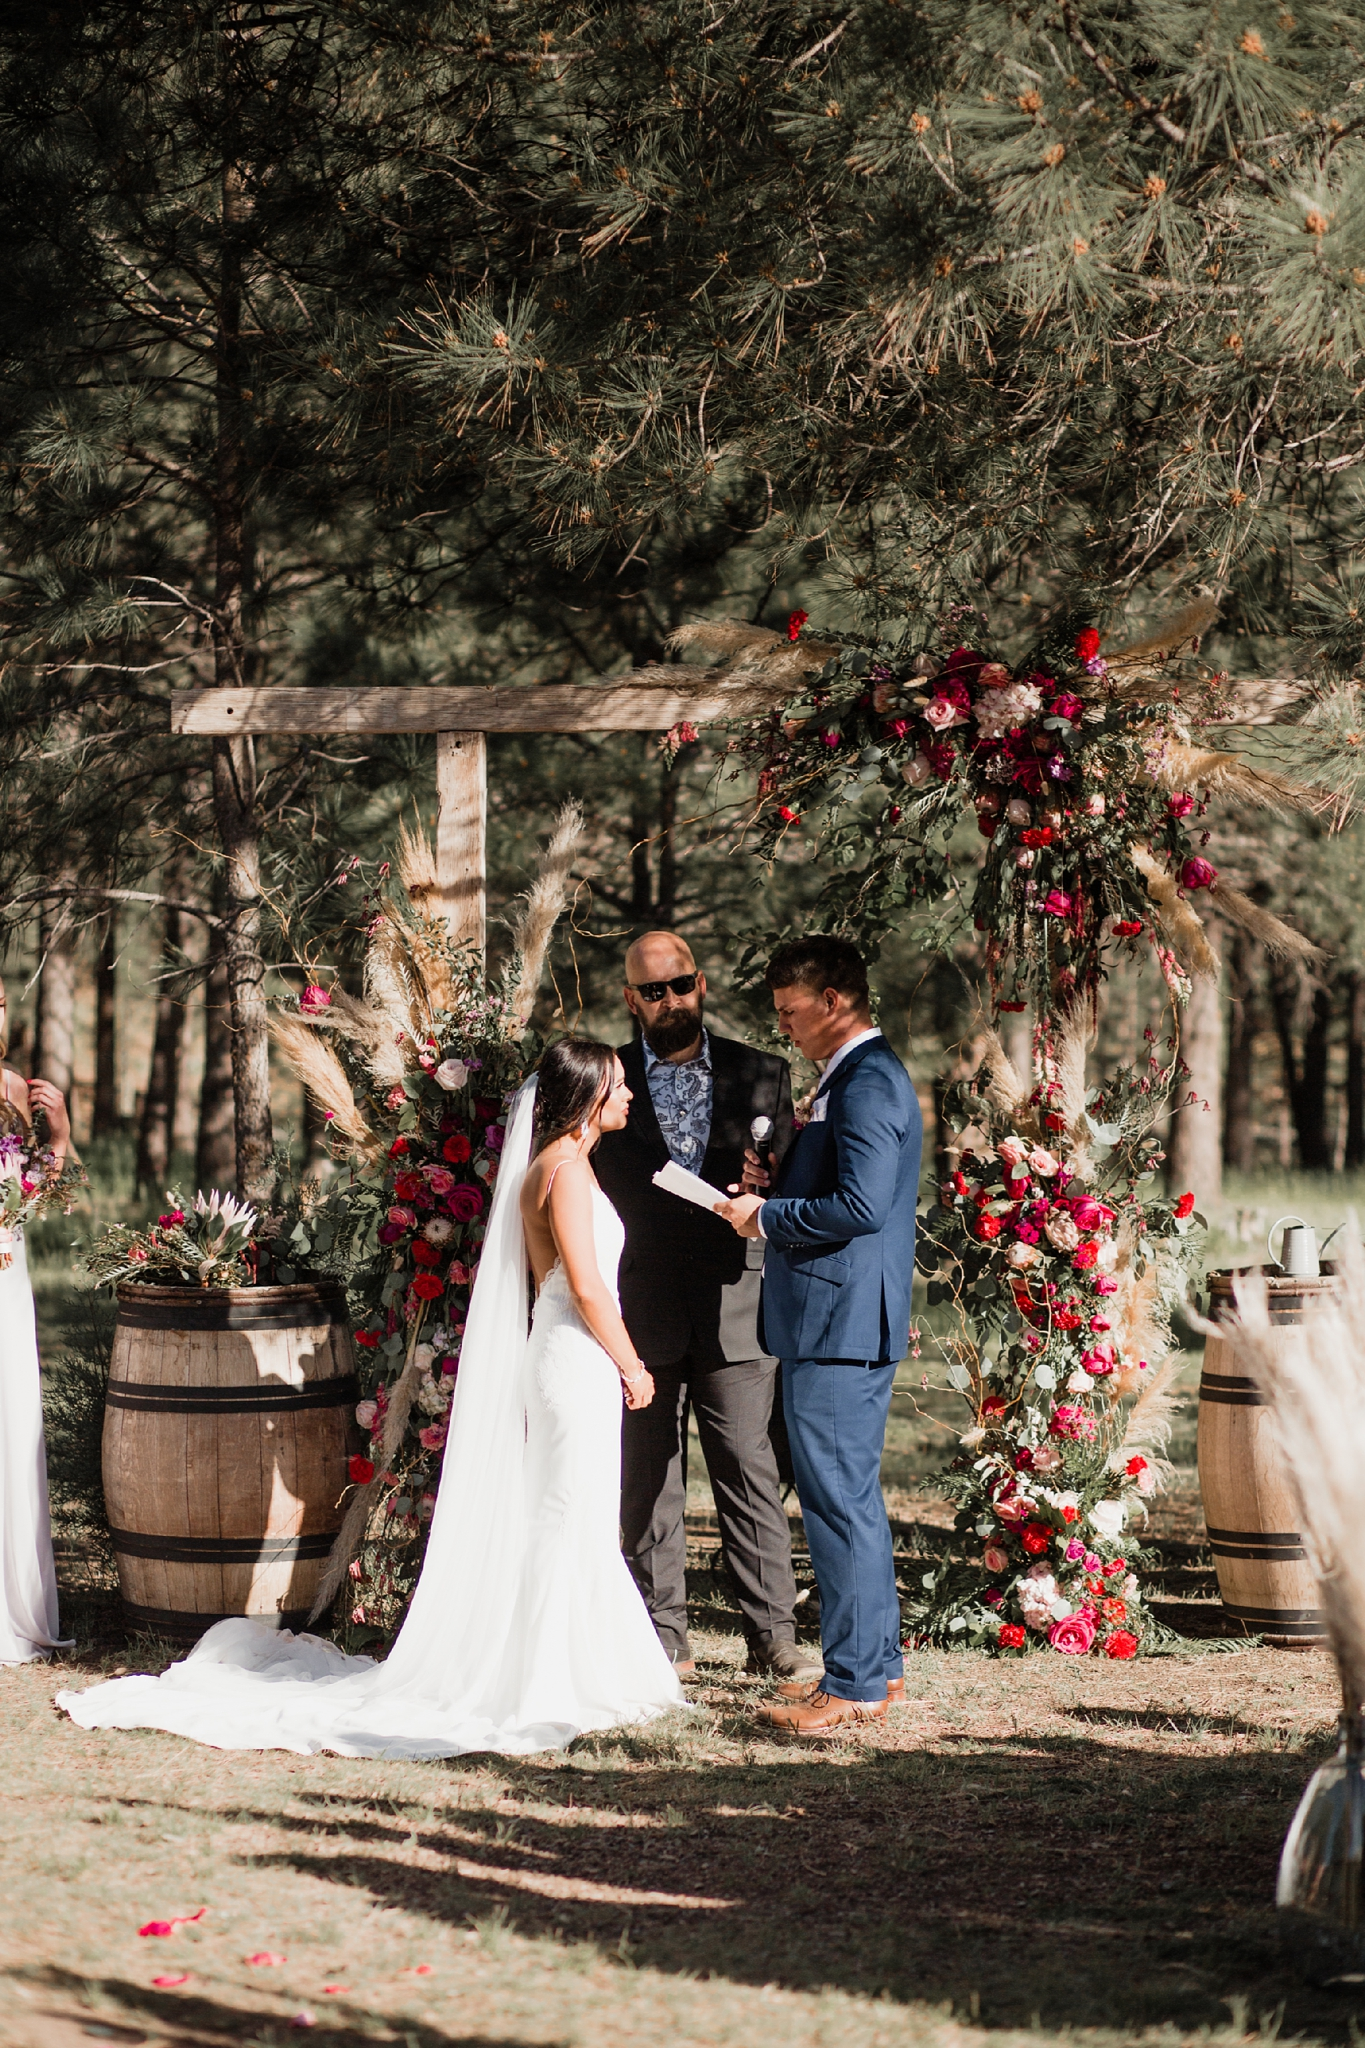 Alicia+lucia+photography+-+albuquerque+wedding+photographer+-+santa+fe+wedding+photography+-+new+mexico+wedding+photographer+-+new+mexico+wedding+-+new+mexico+wedding+-+barn+wedding+-+enchanted+vine+barn+wedding+-+ruidoso+wedding_0102.jpg